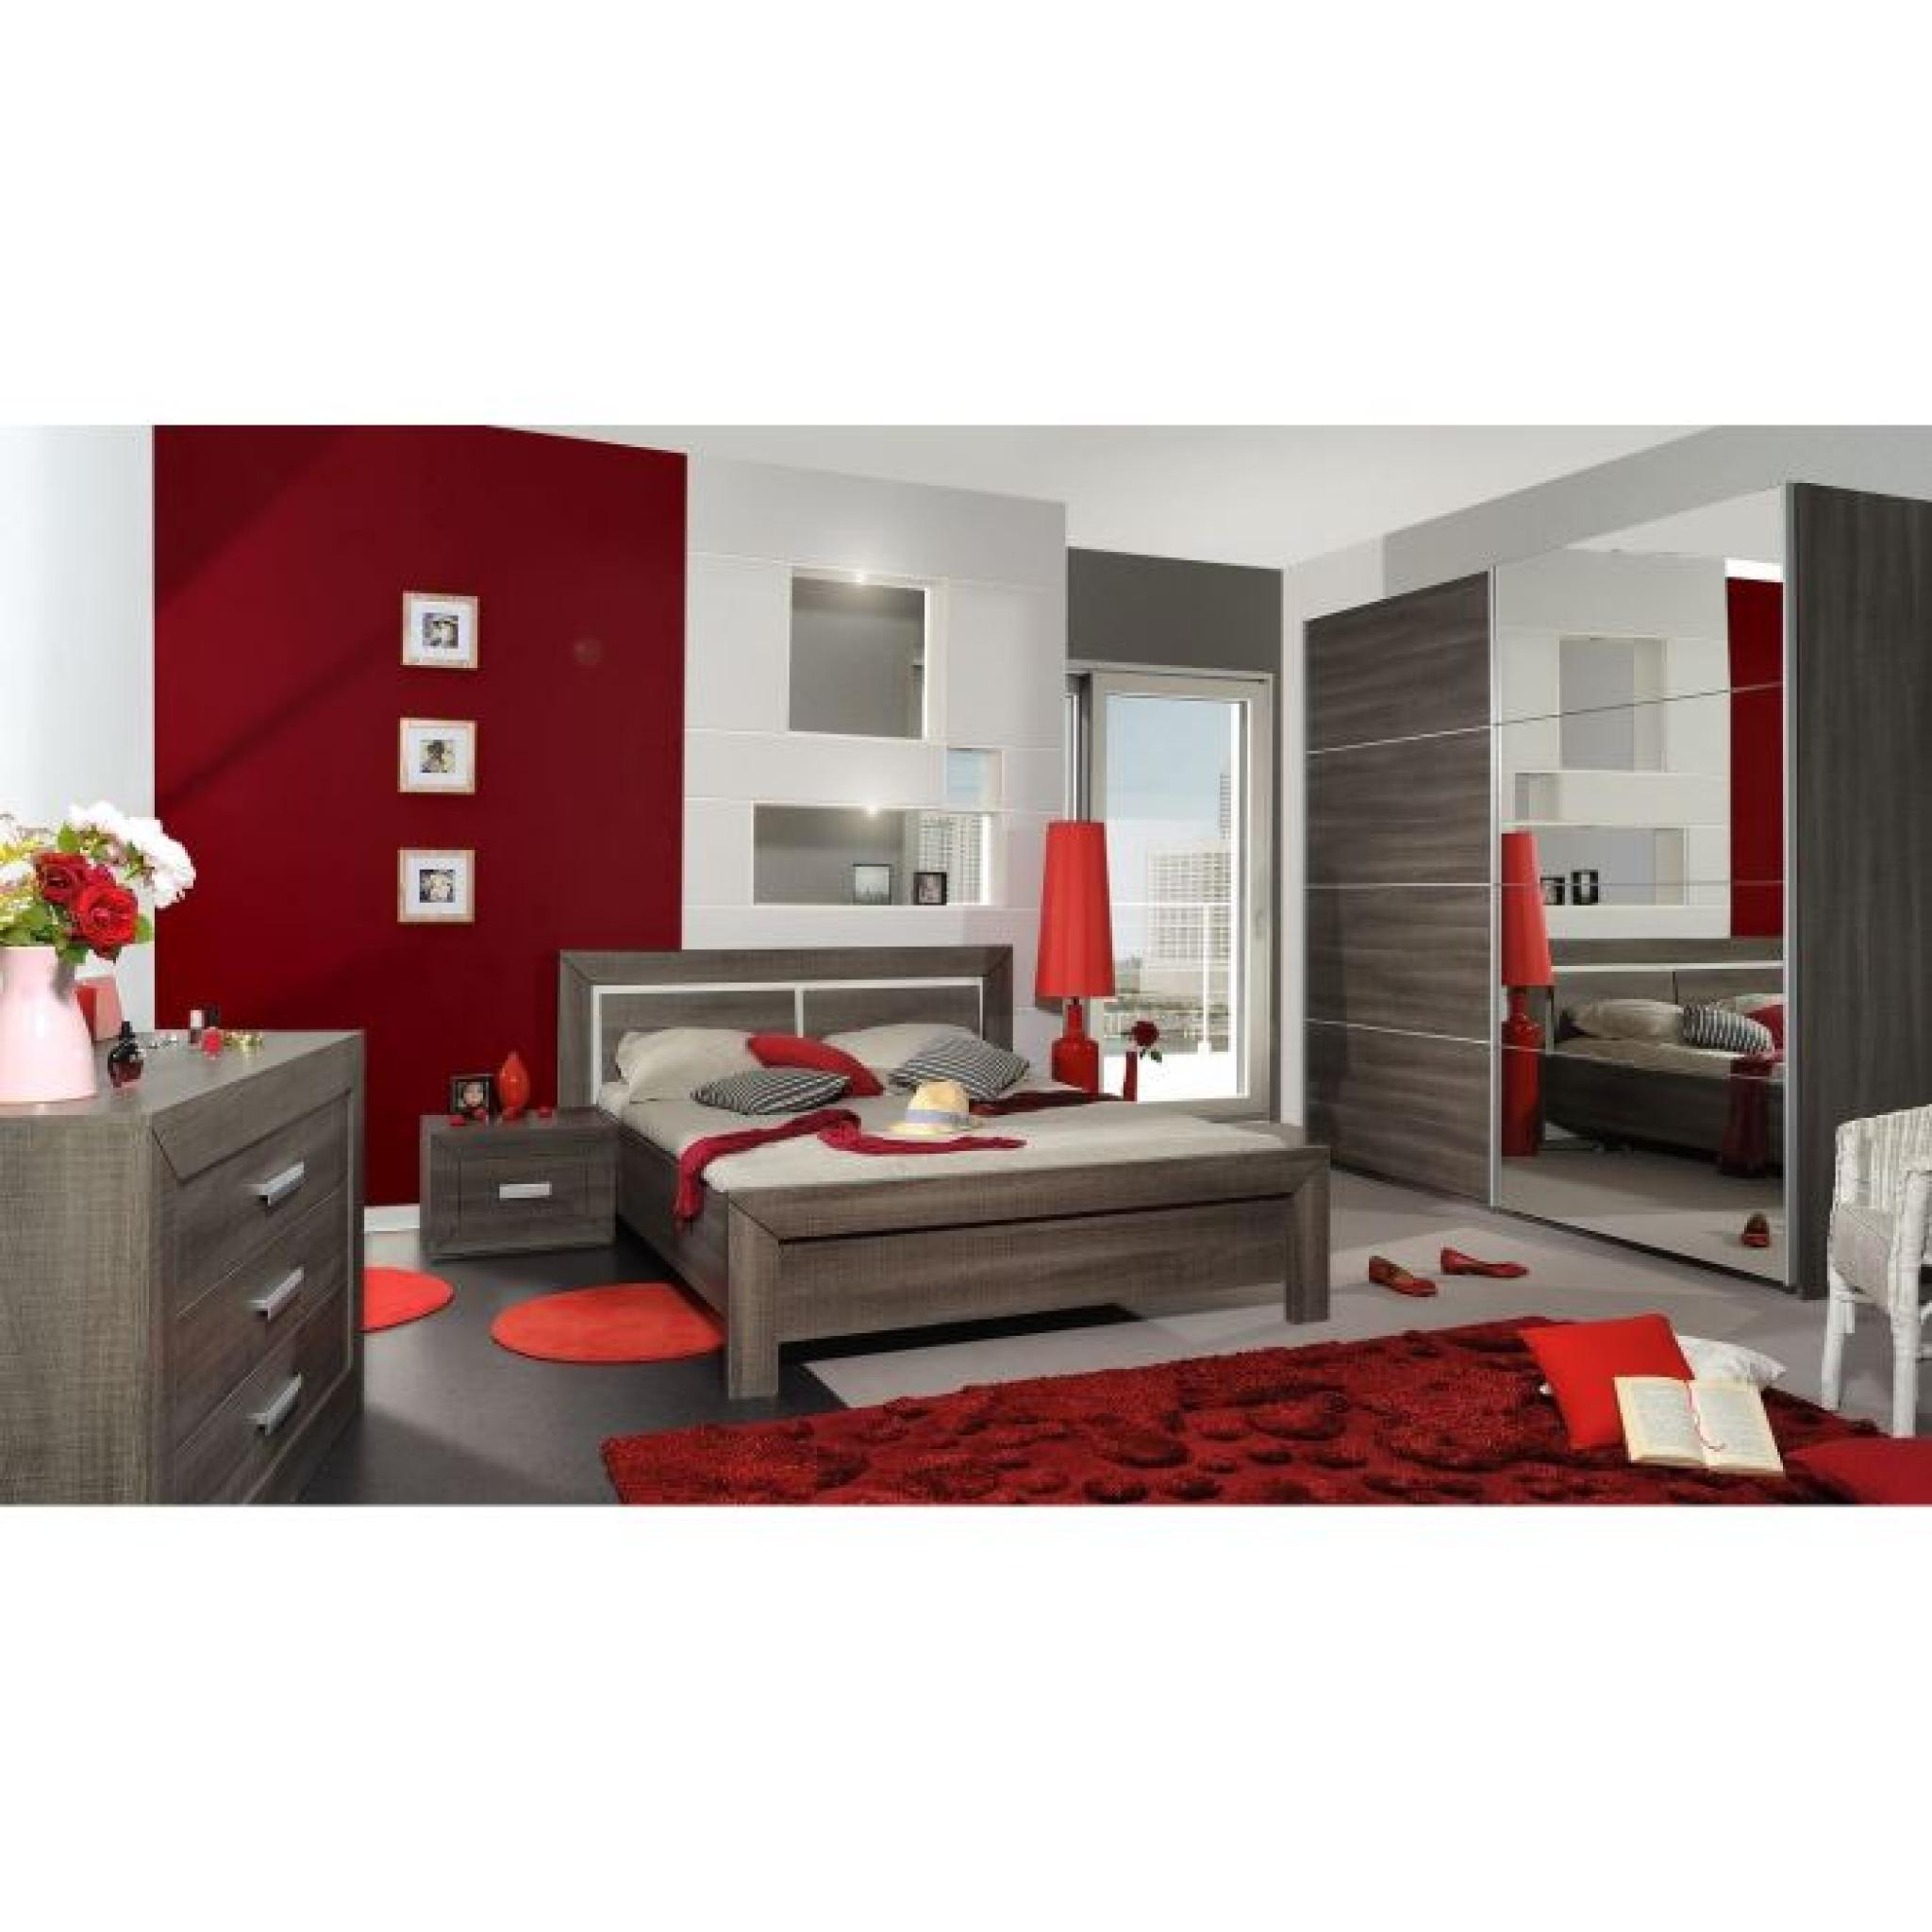 avignon lit adulte 160 x 200 cm coloris bois gris achat. Black Bedroom Furniture Sets. Home Design Ideas